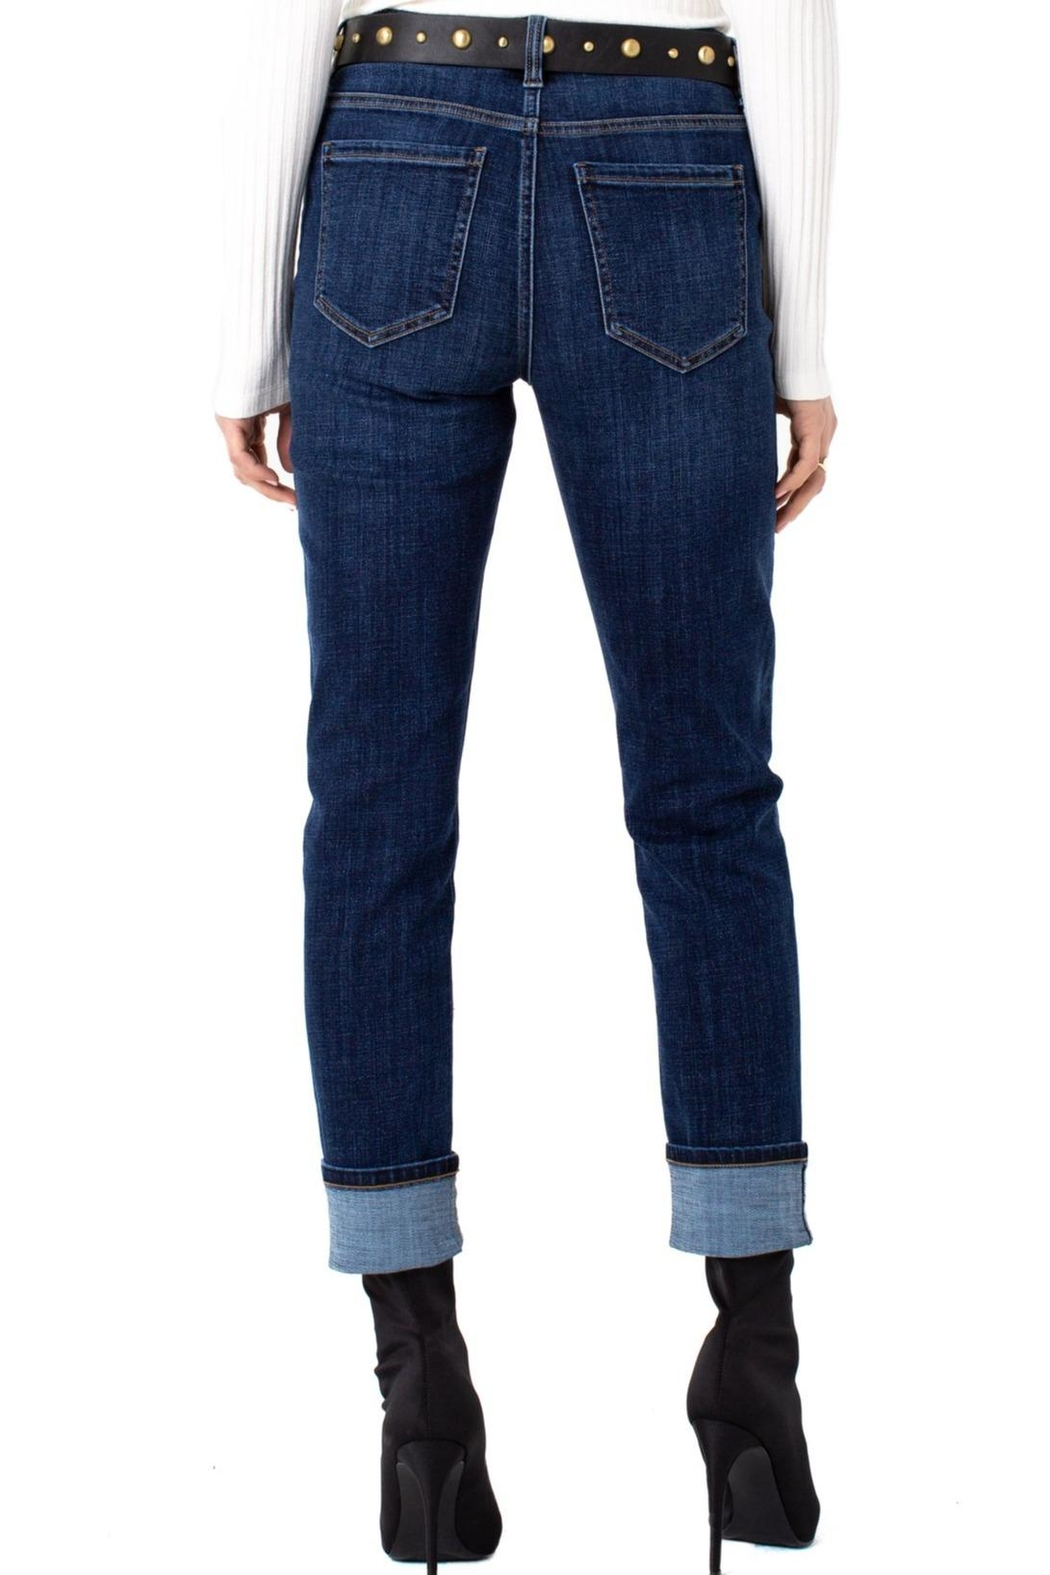 Liverpool Jeans Company Marley Girlfriend Cuffed With Belt Jeans - Side Cropped Image